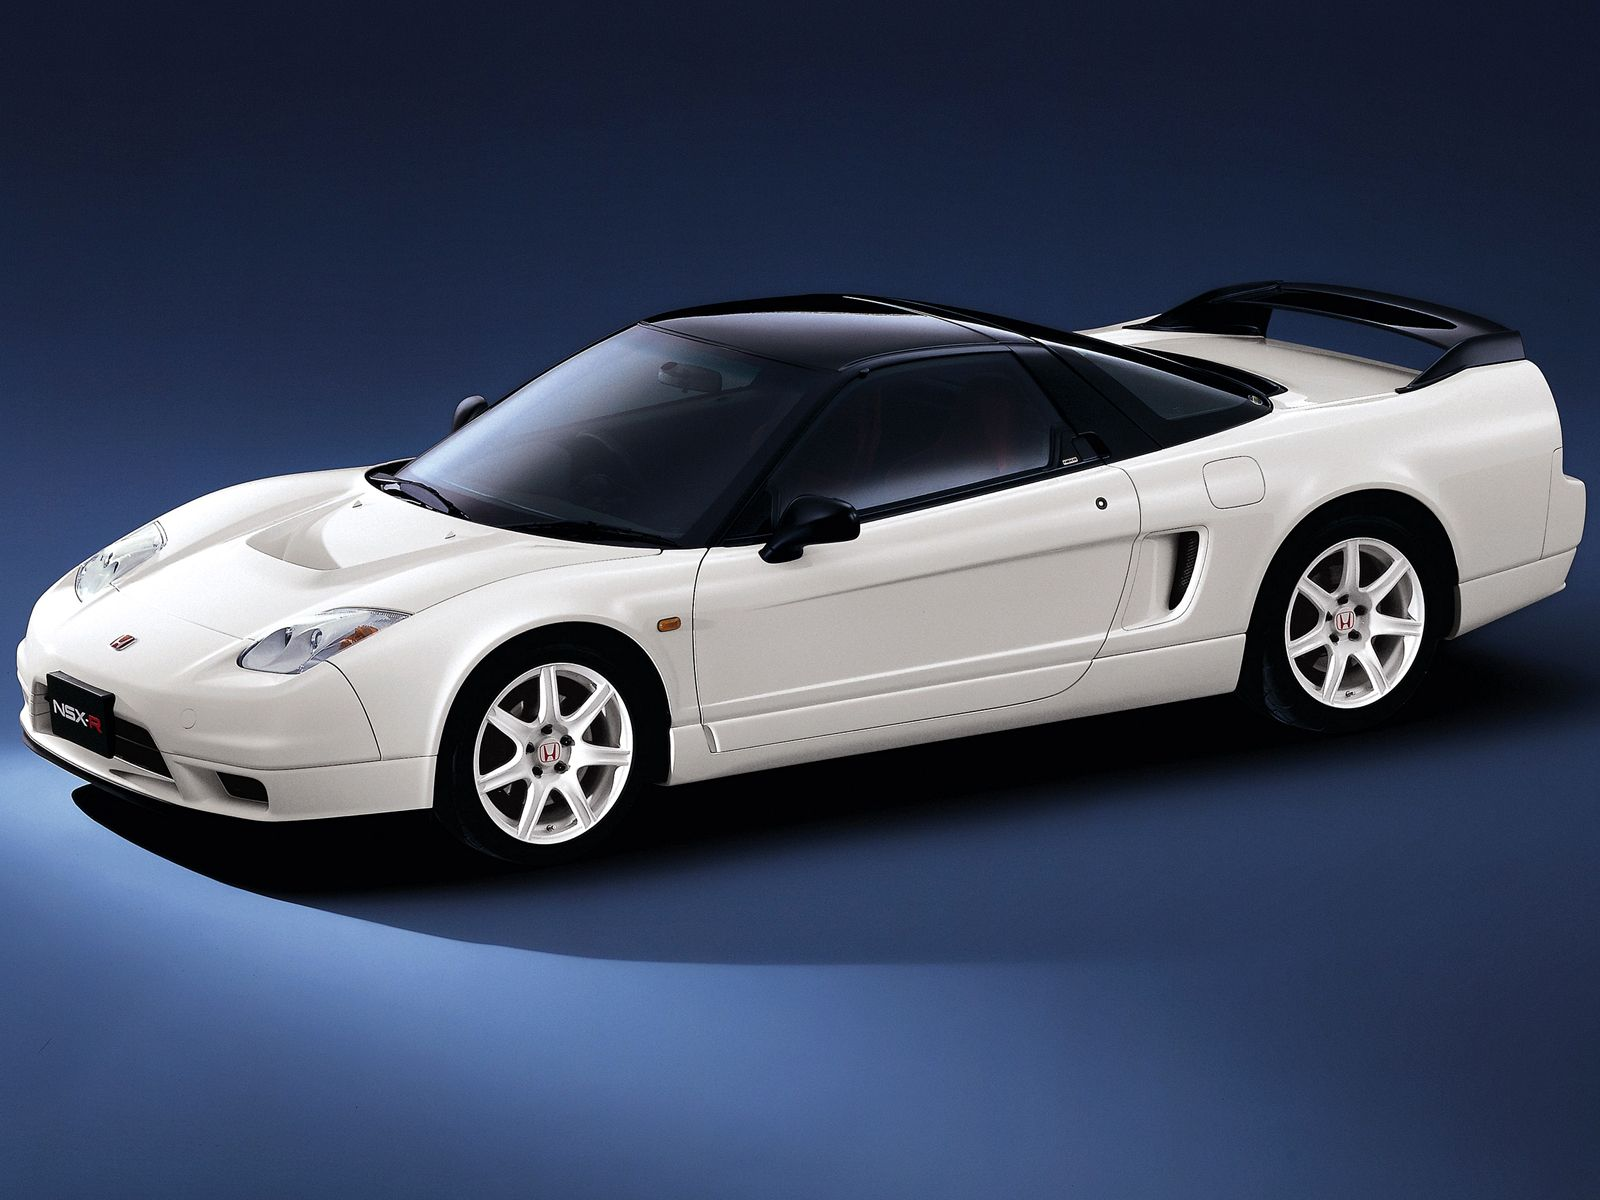 2011 Honda NSX Honda NSX – Now More Revised and Updated